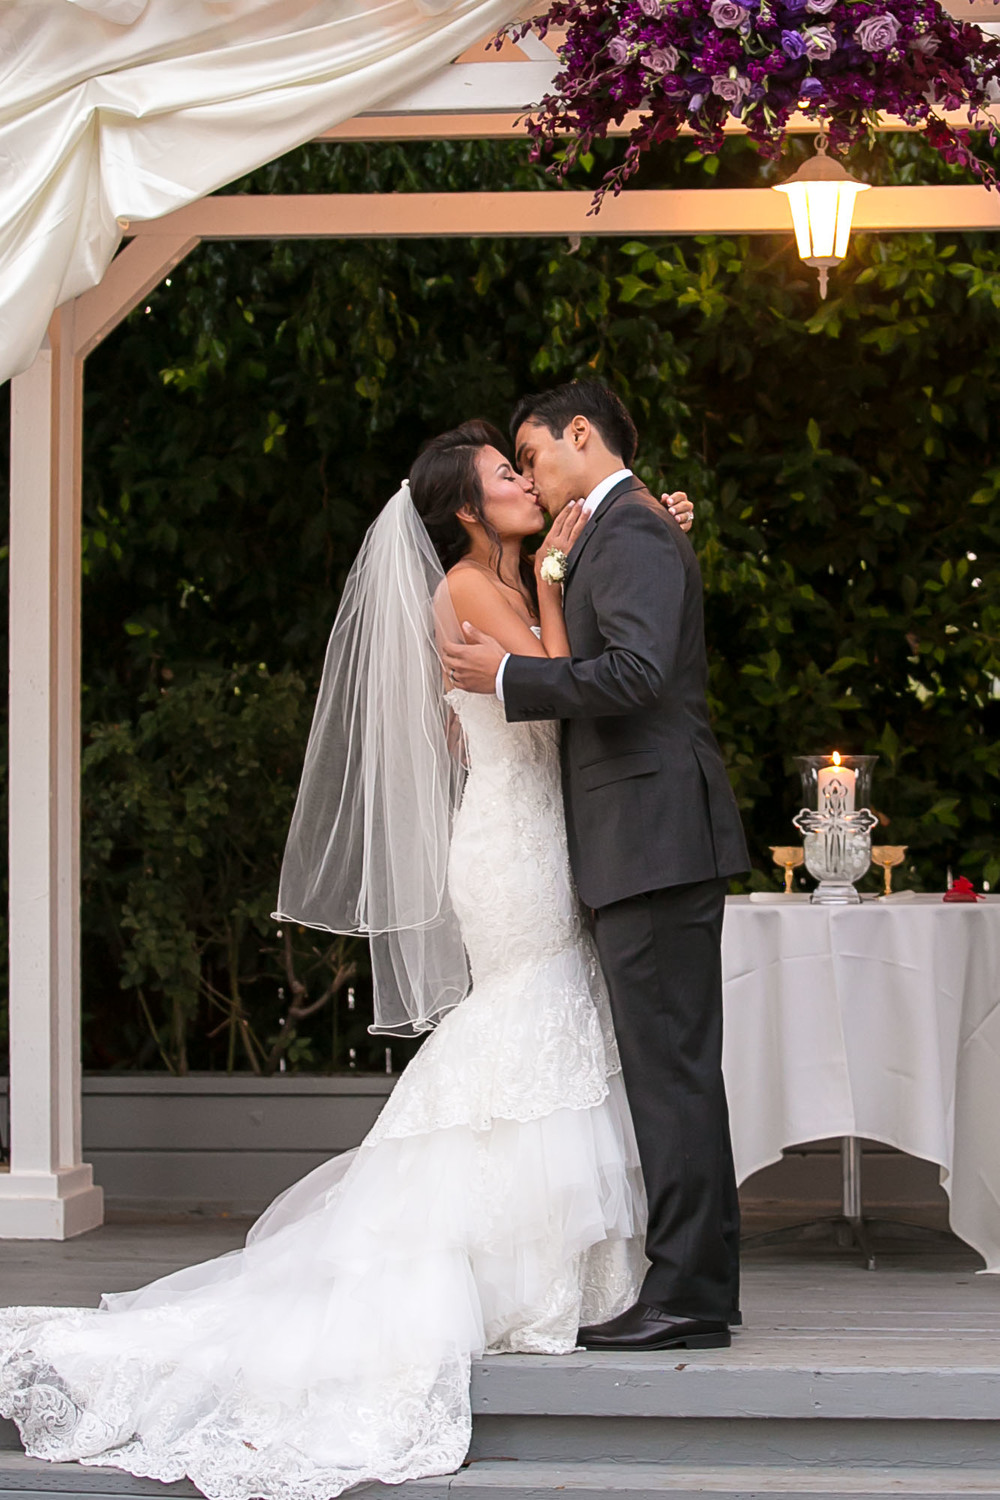 SPORTSMENS LODGE WEDDING LOS ANGELES WEDDING PHOTOGRAPHER CHRIS HOLT PHOTOGRAPHY_032.jpg